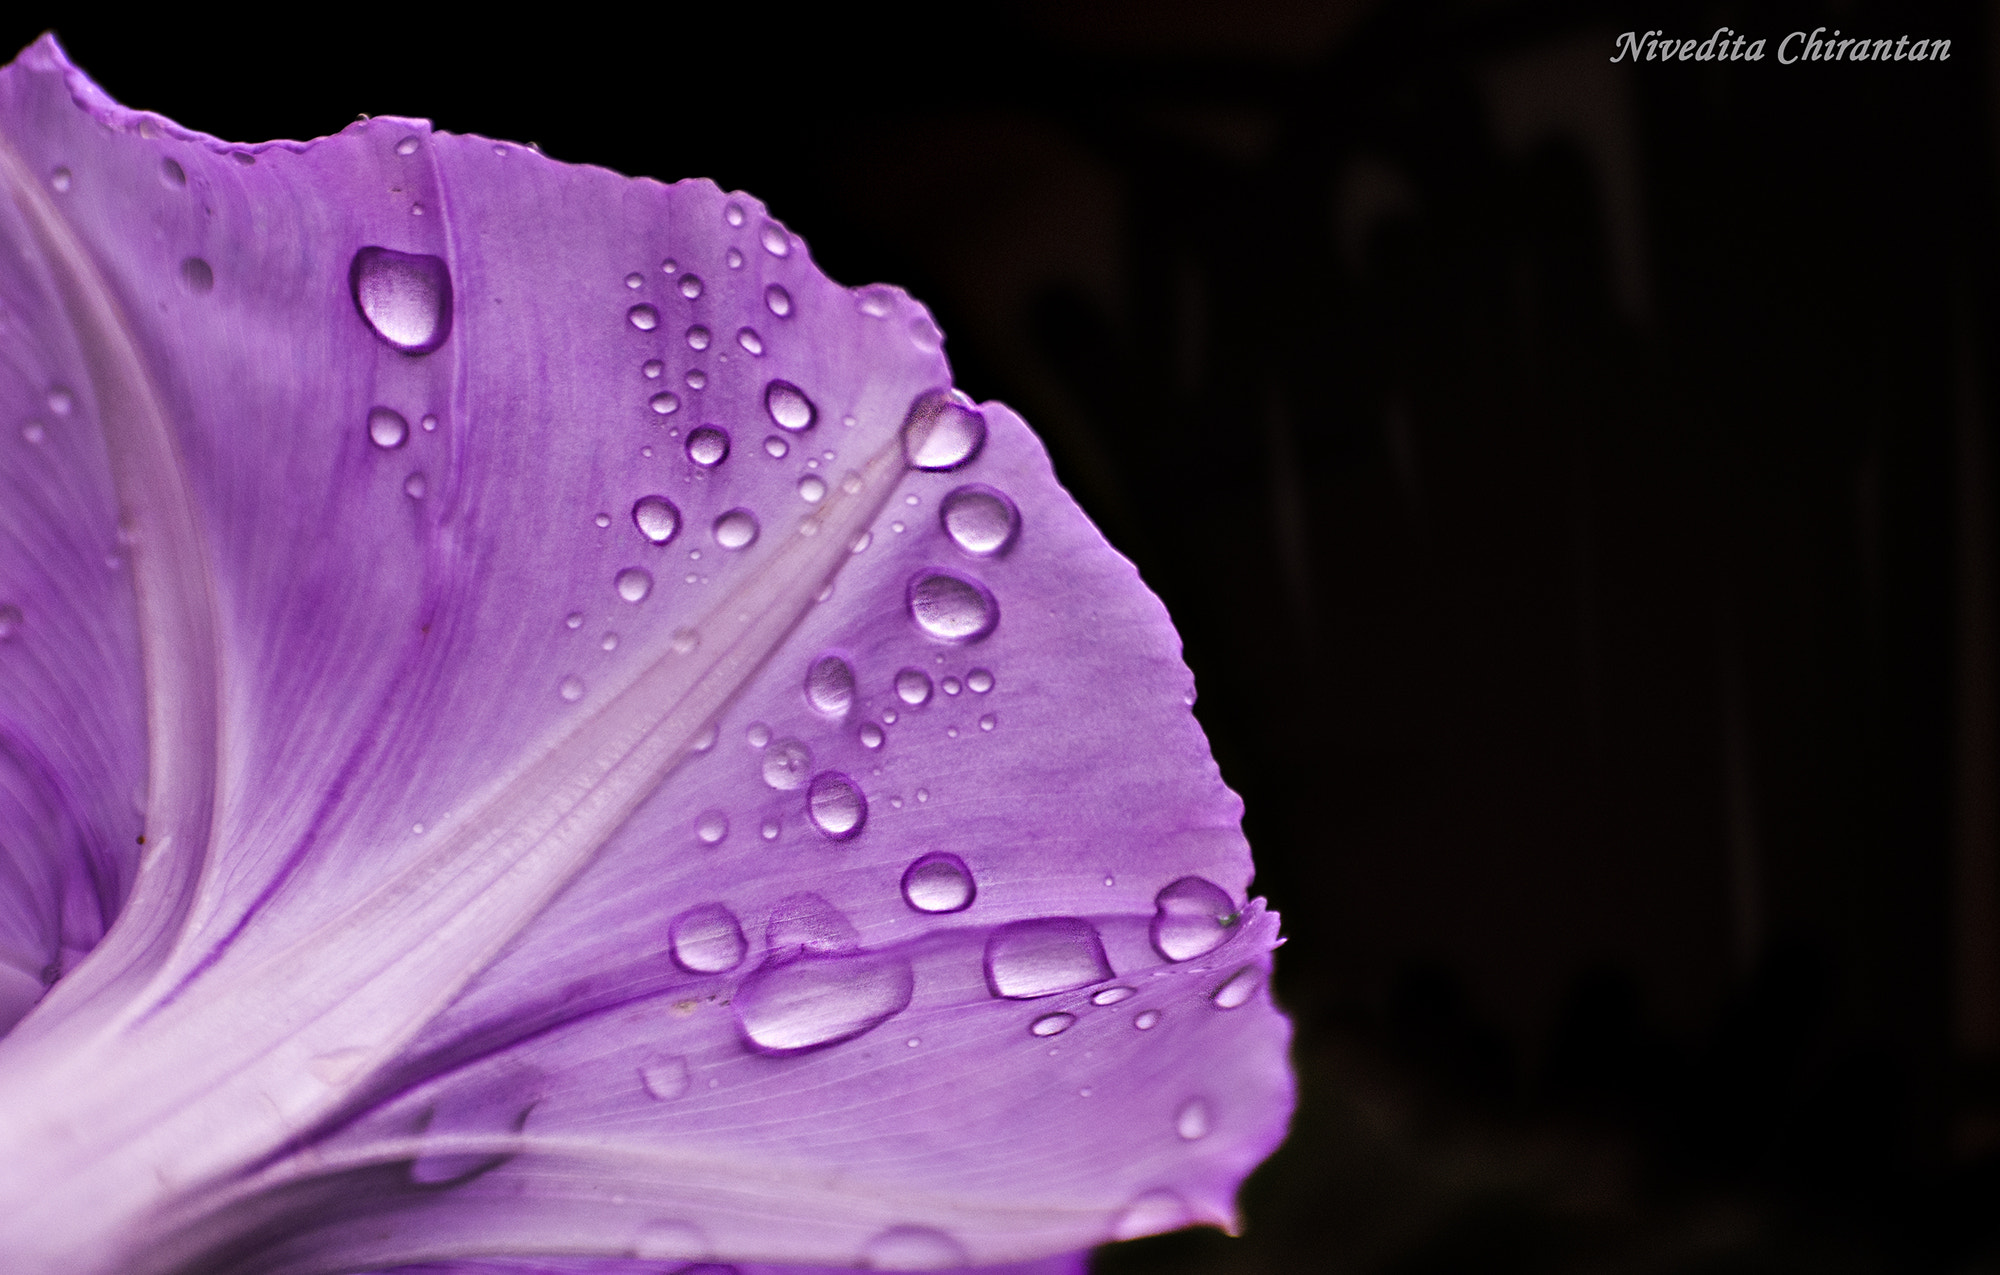 Photograph colour and drops by Nivedita Chirantan on 500px